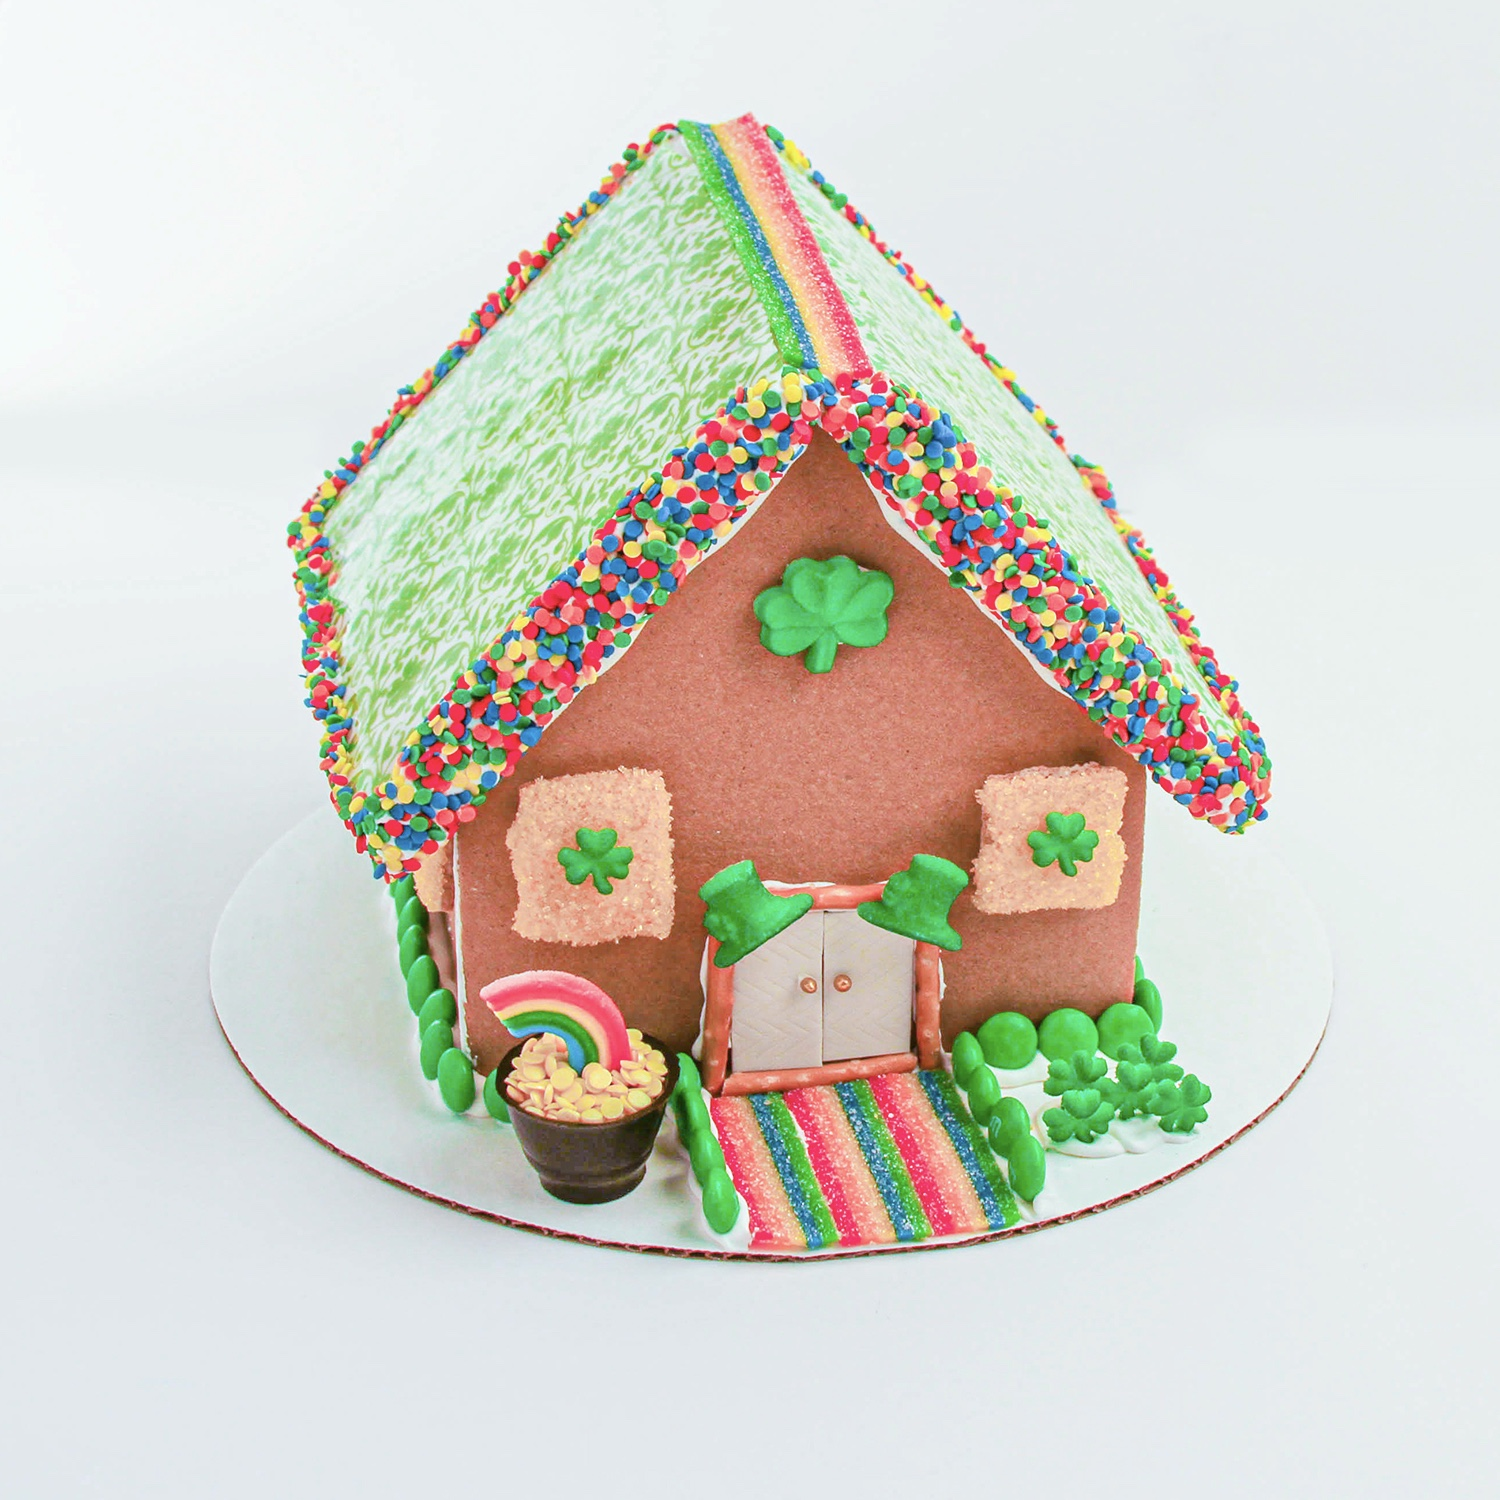 St. Patrick's Day Gingerbread House